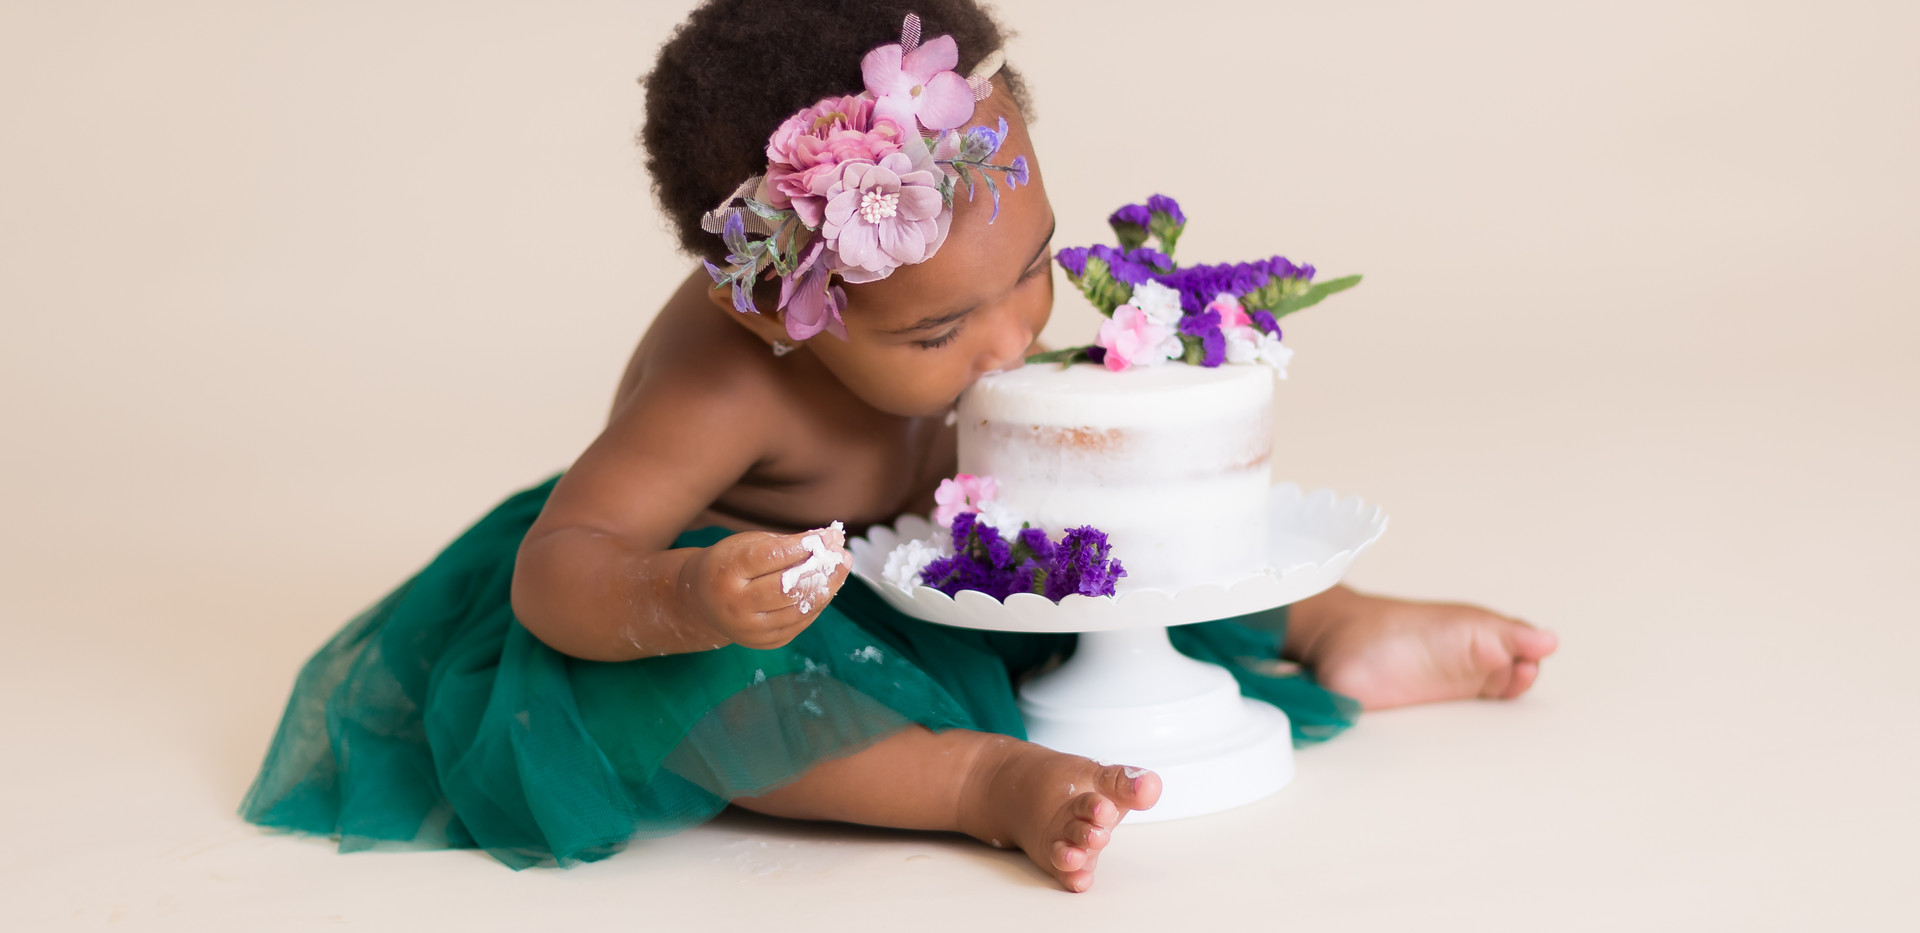 baby girl eating birthday cake, Chattanooga cake smash photographer